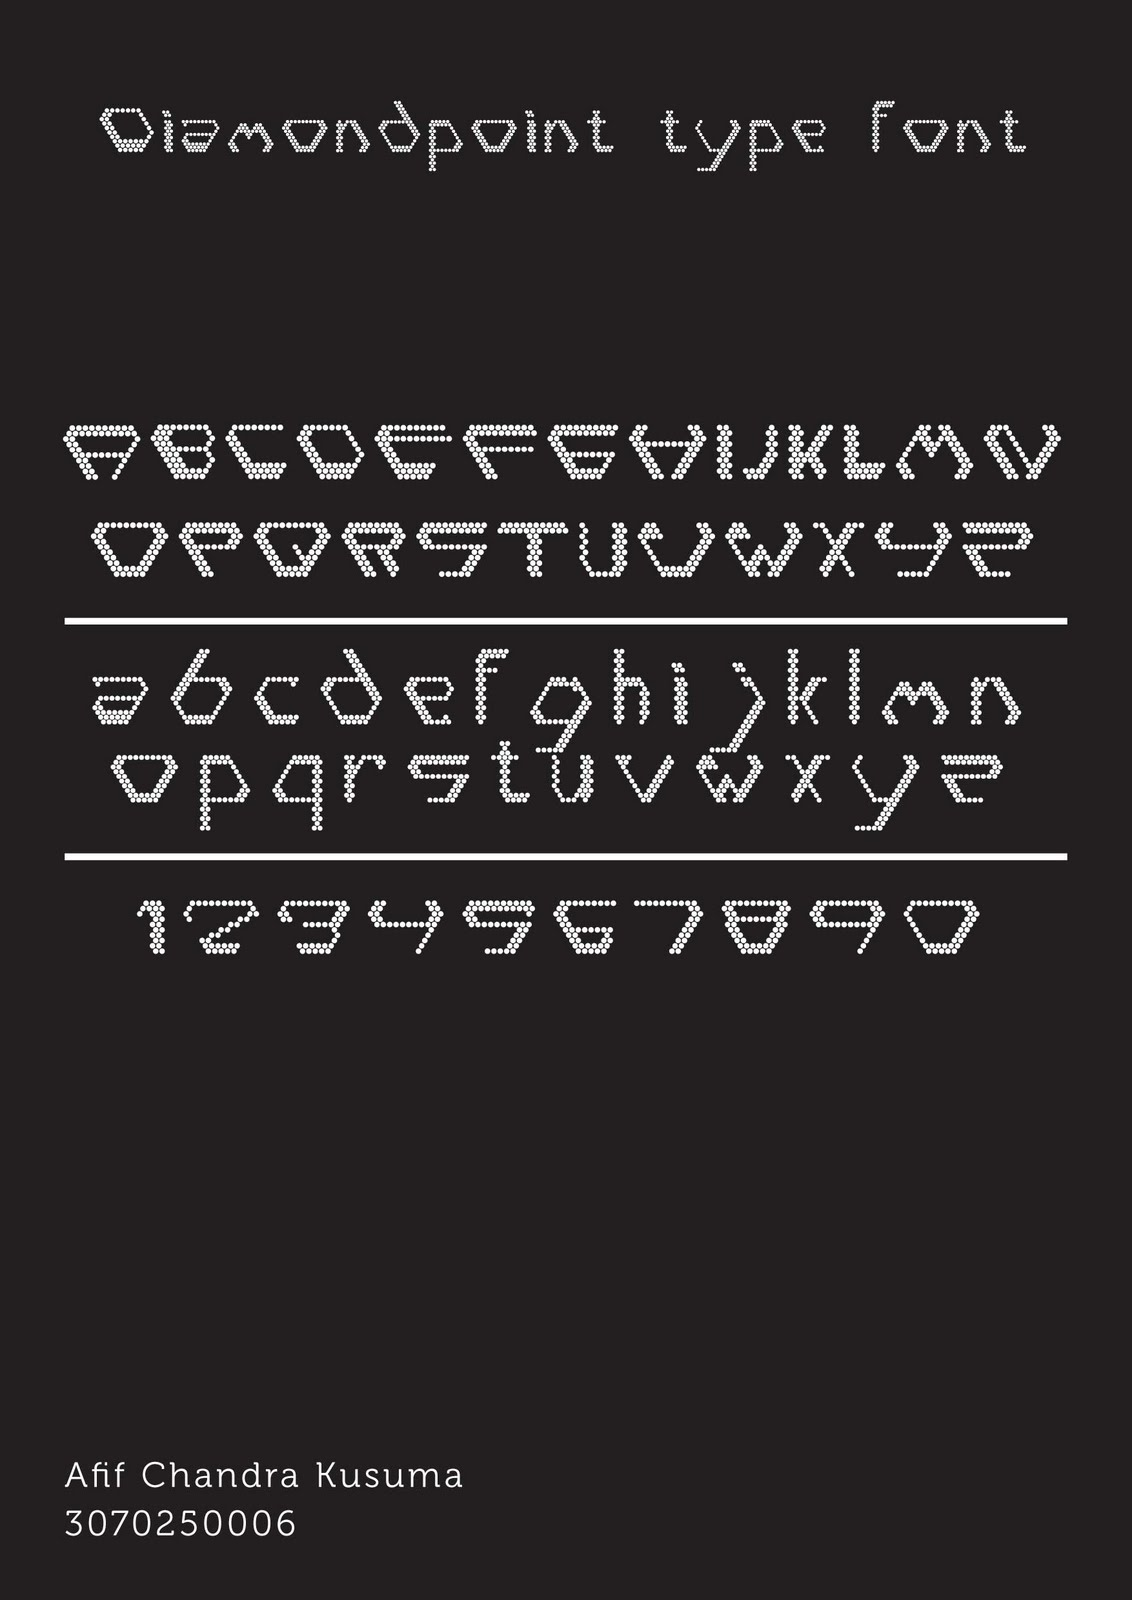 DIamondpoint typefont by findra